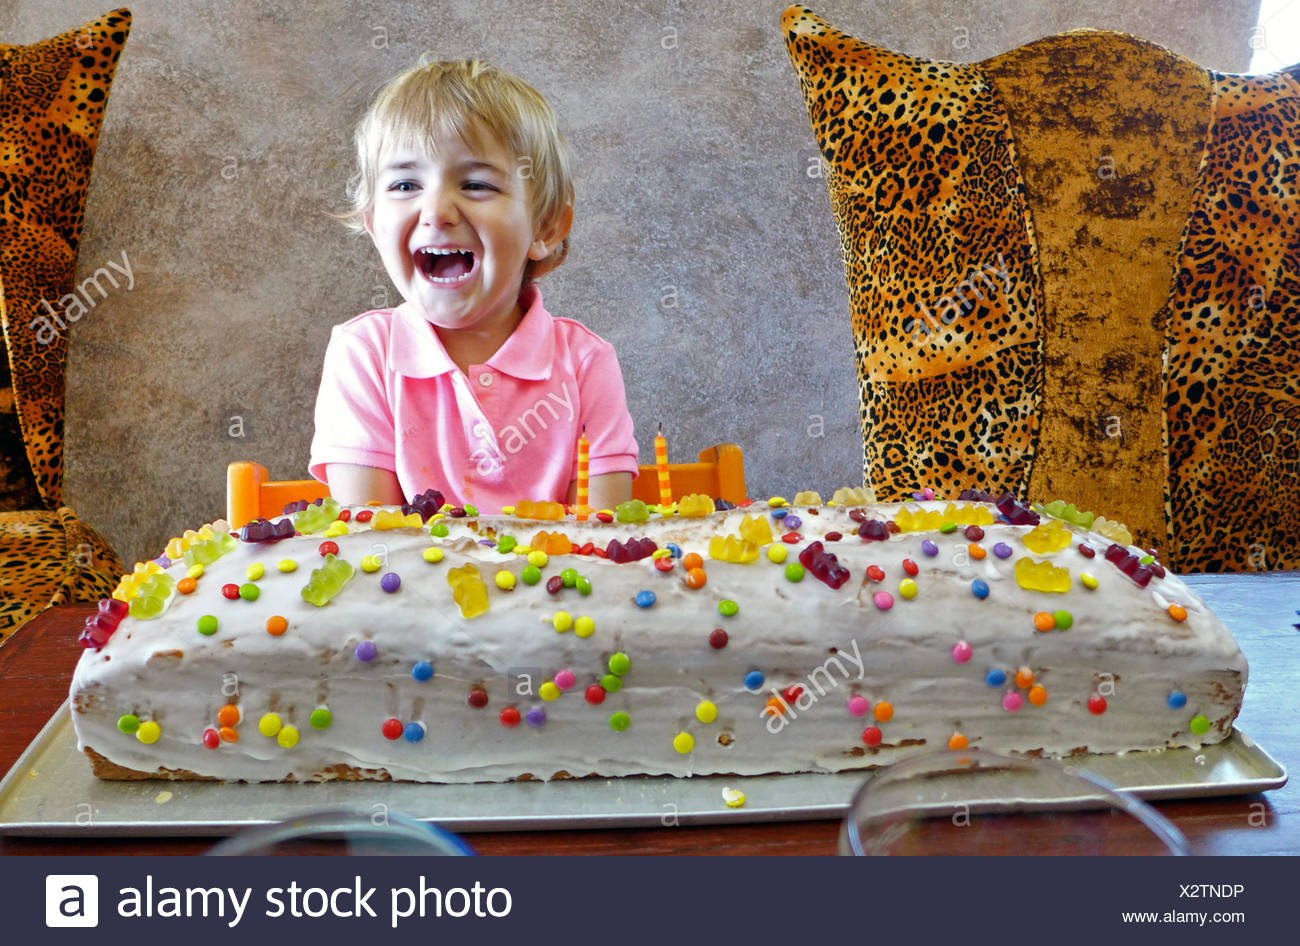 Outstanding Little Boy With Giant Birthday Cake Stock Photo 277138898 Alamy Birthday Cards Printable Benkemecafe Filternl